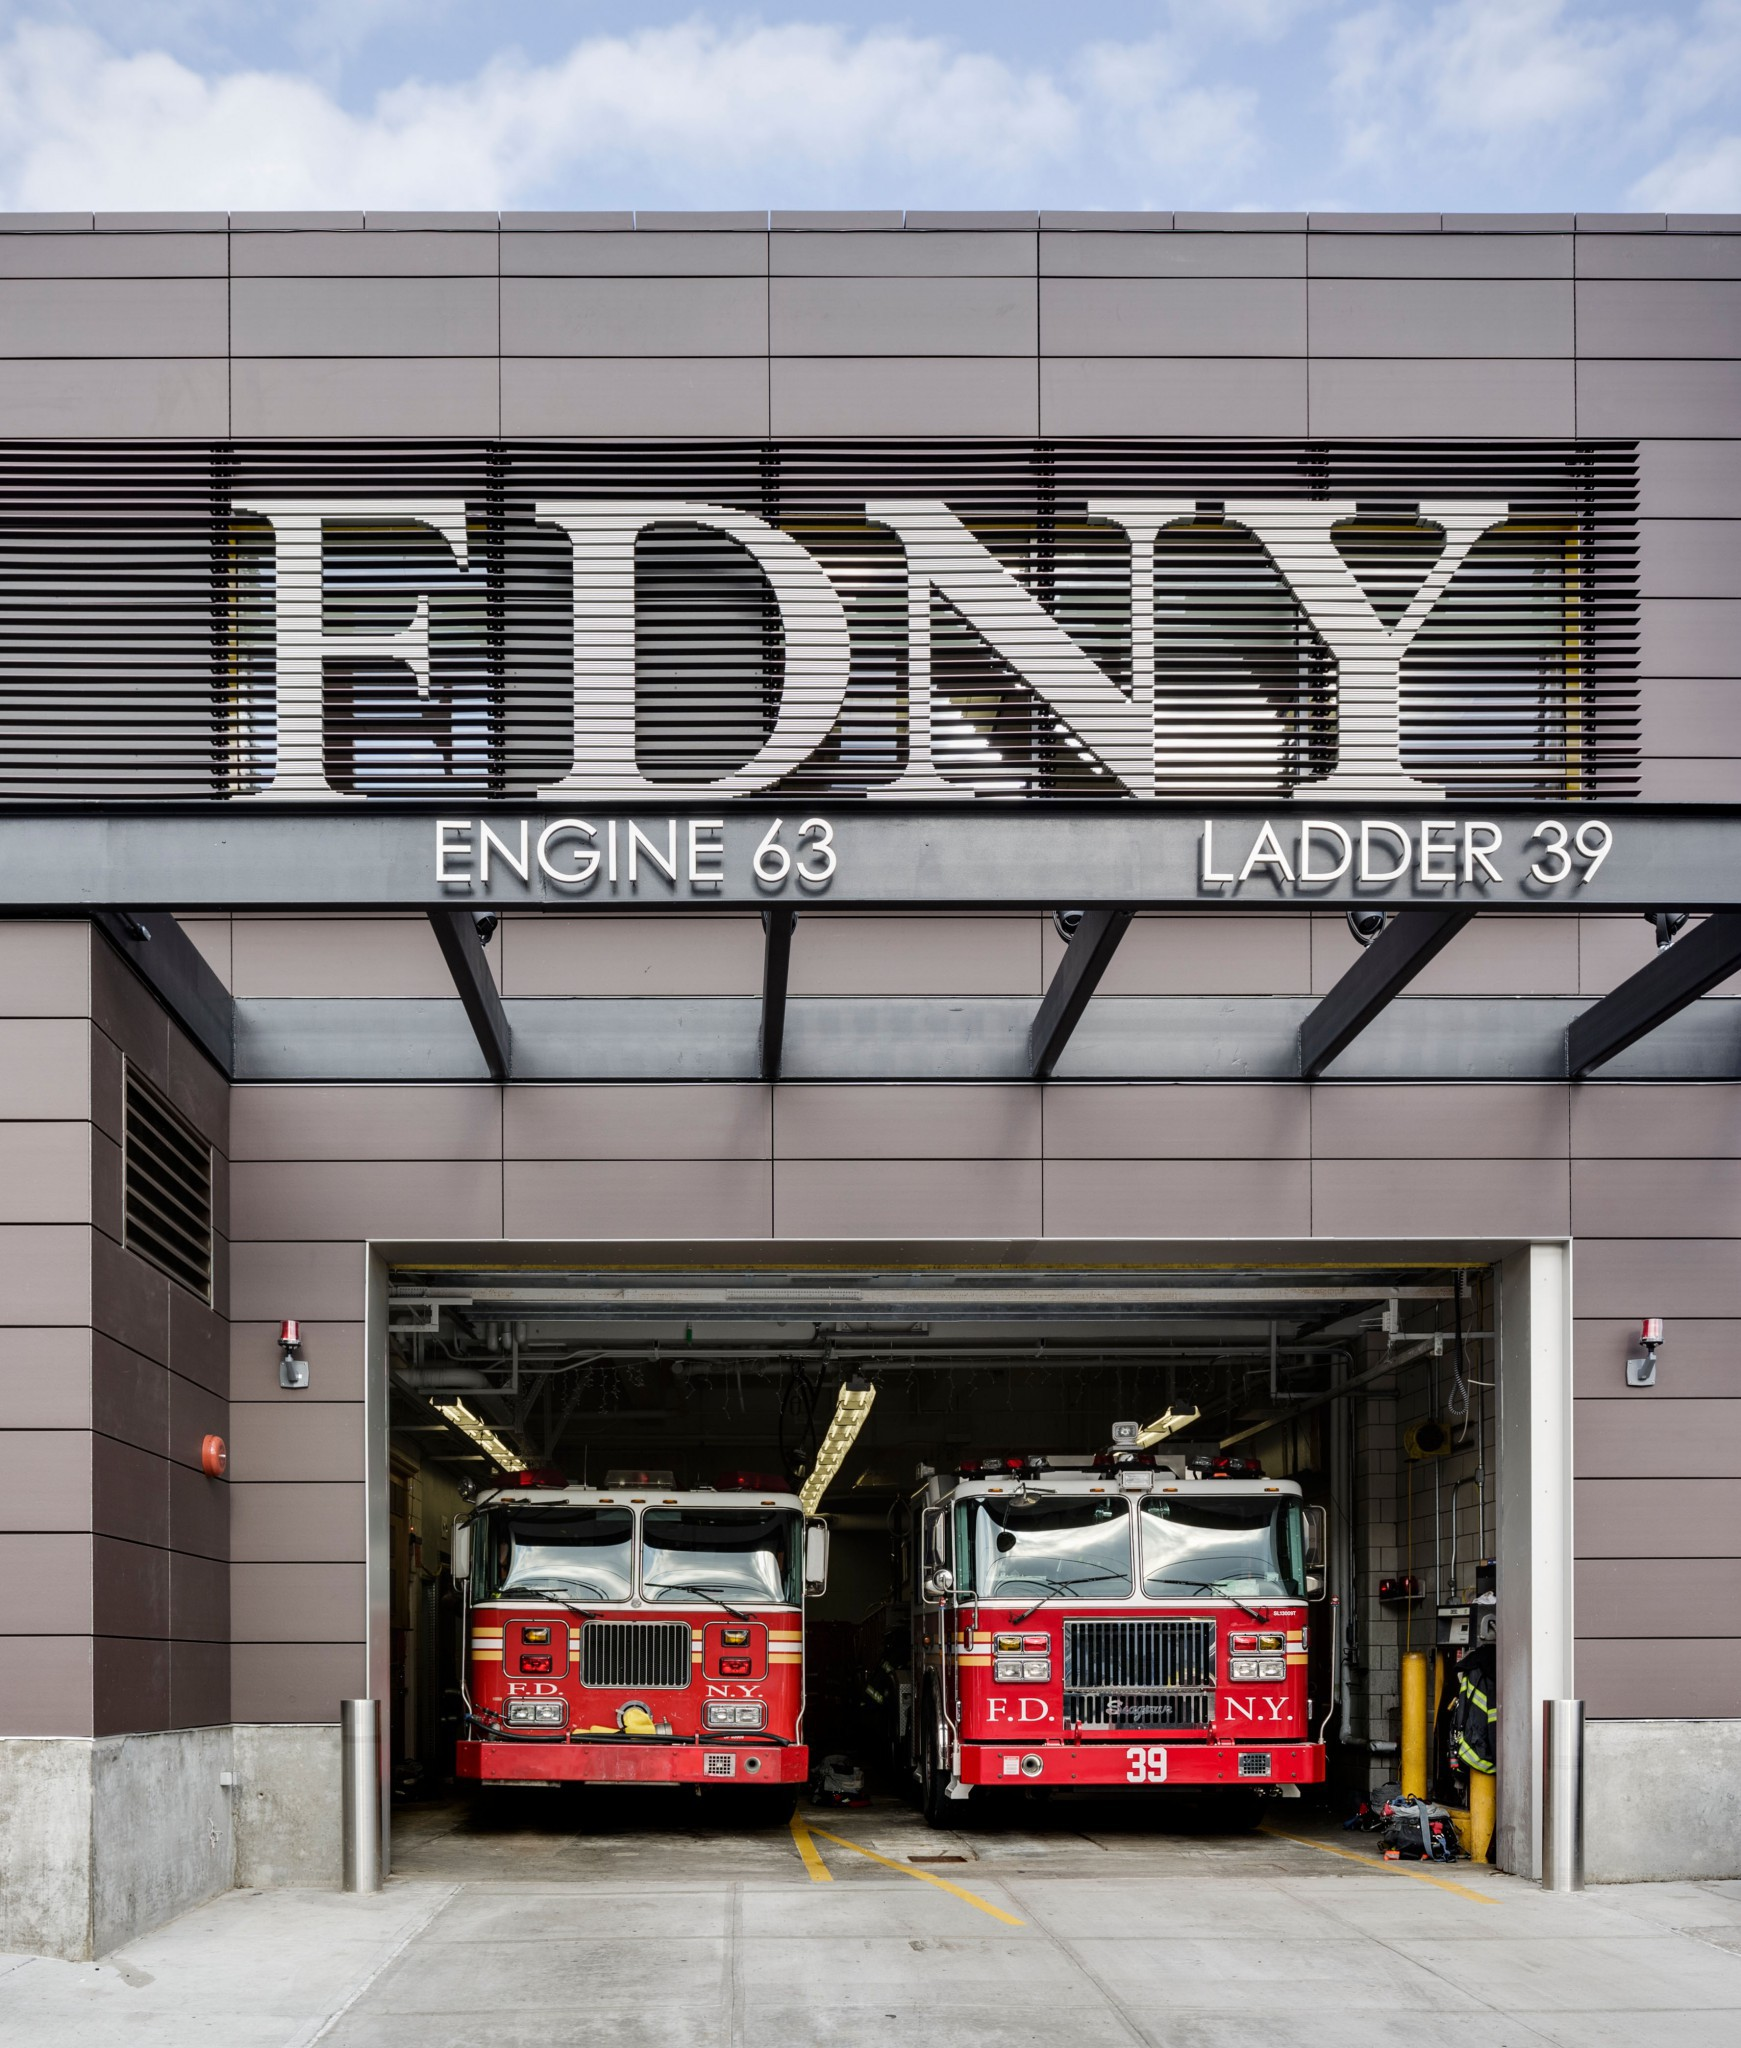 Engine Company 63 in the Bronx - designed by architect Theodore Galante